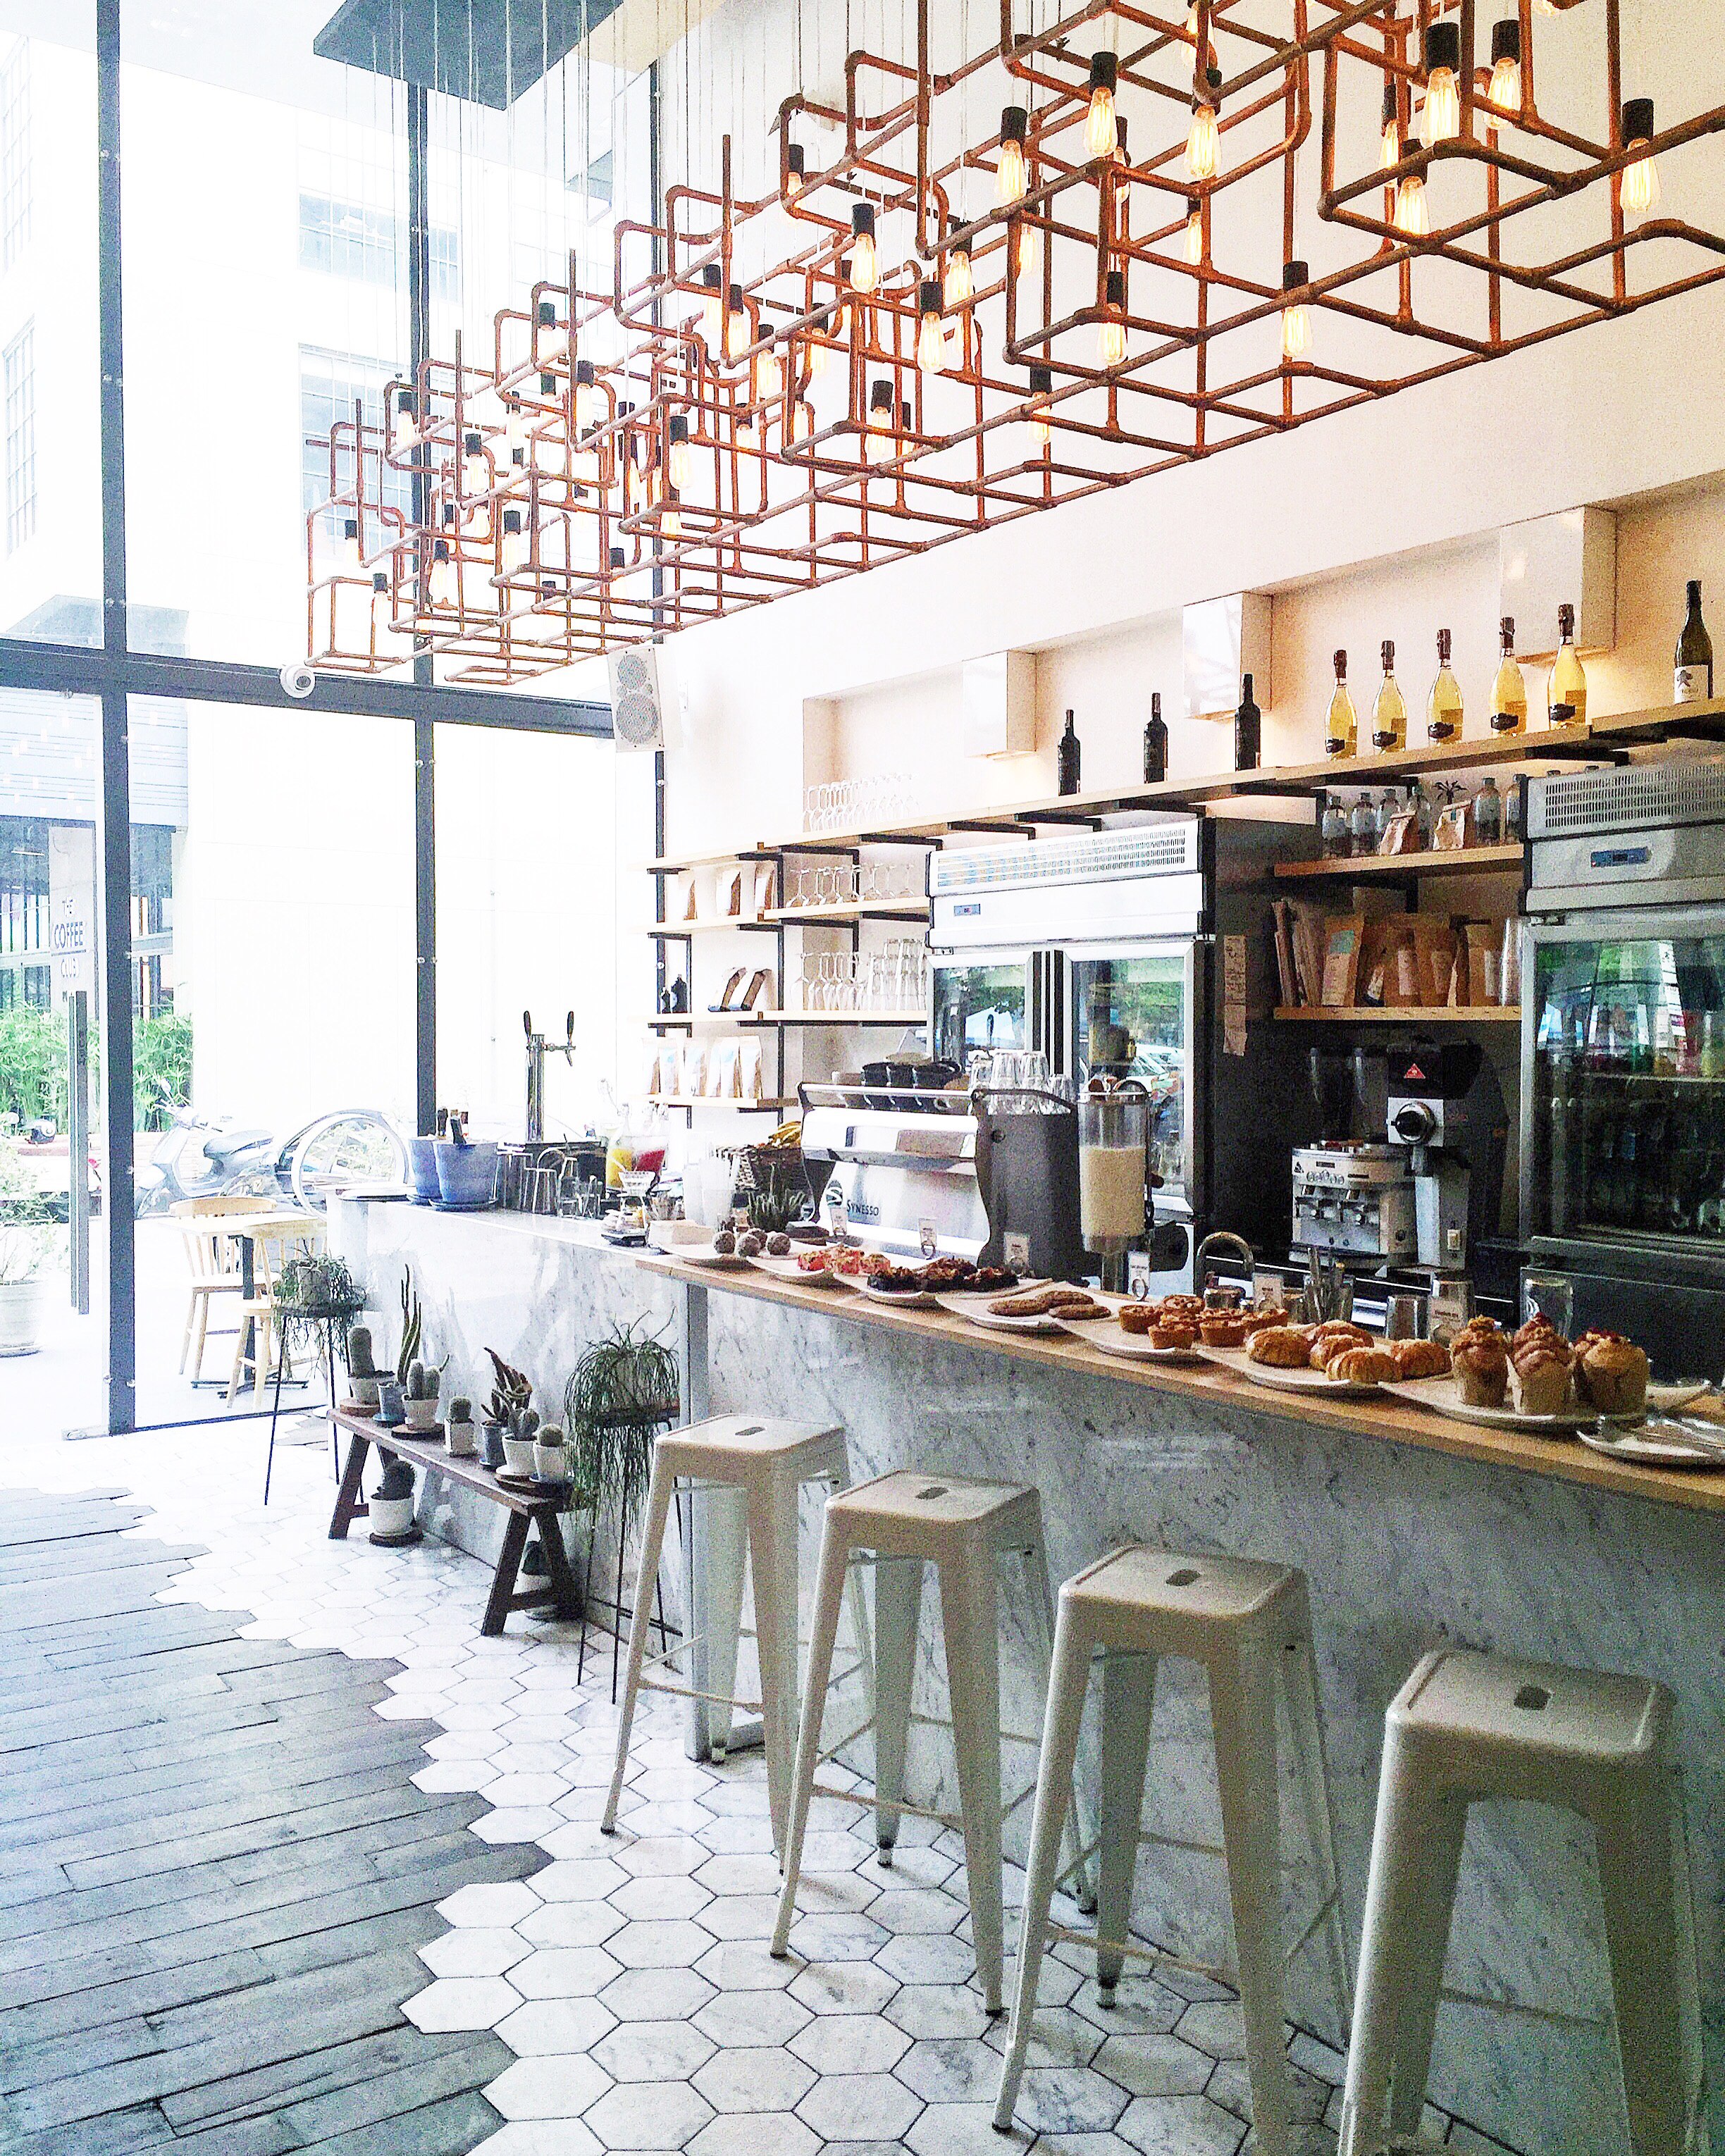 Amazing coffee and pastries at Rocket Coffee Bar